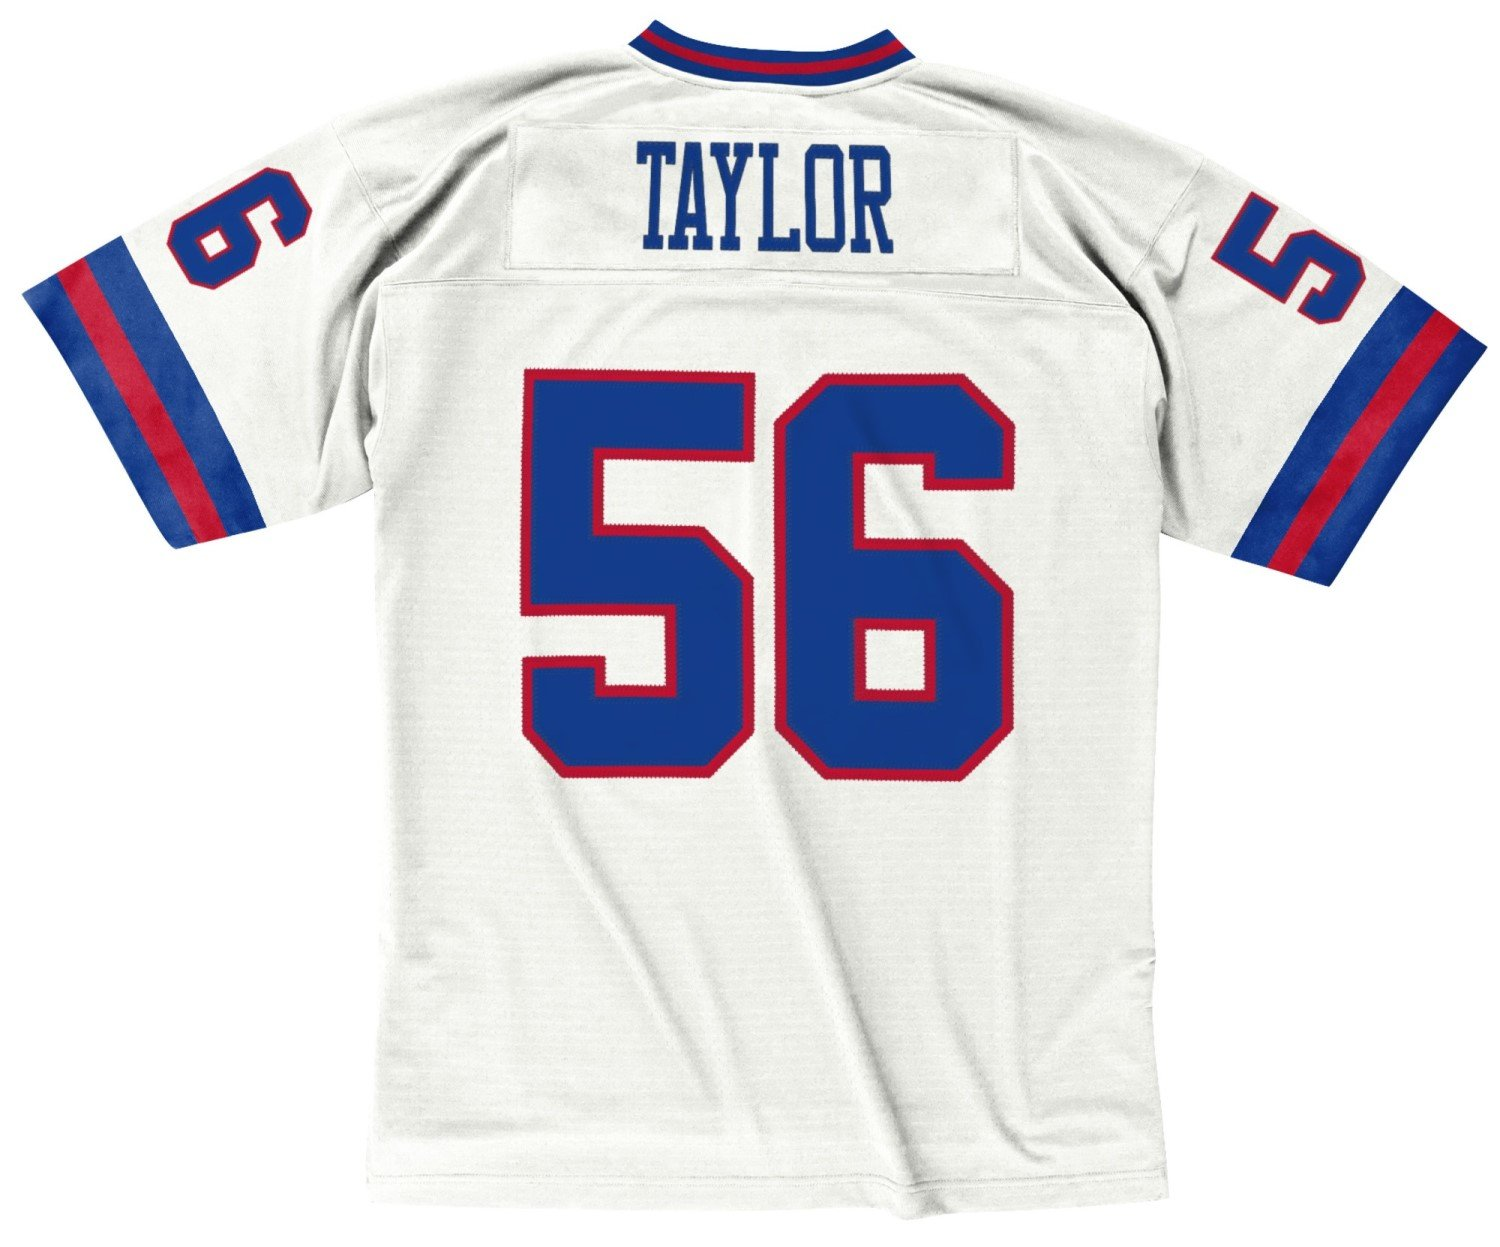 finest selection b2d6a 6e91a Mitchell & Ness Lawrence Taylor New York Giants White 1986 Throwback Jersey